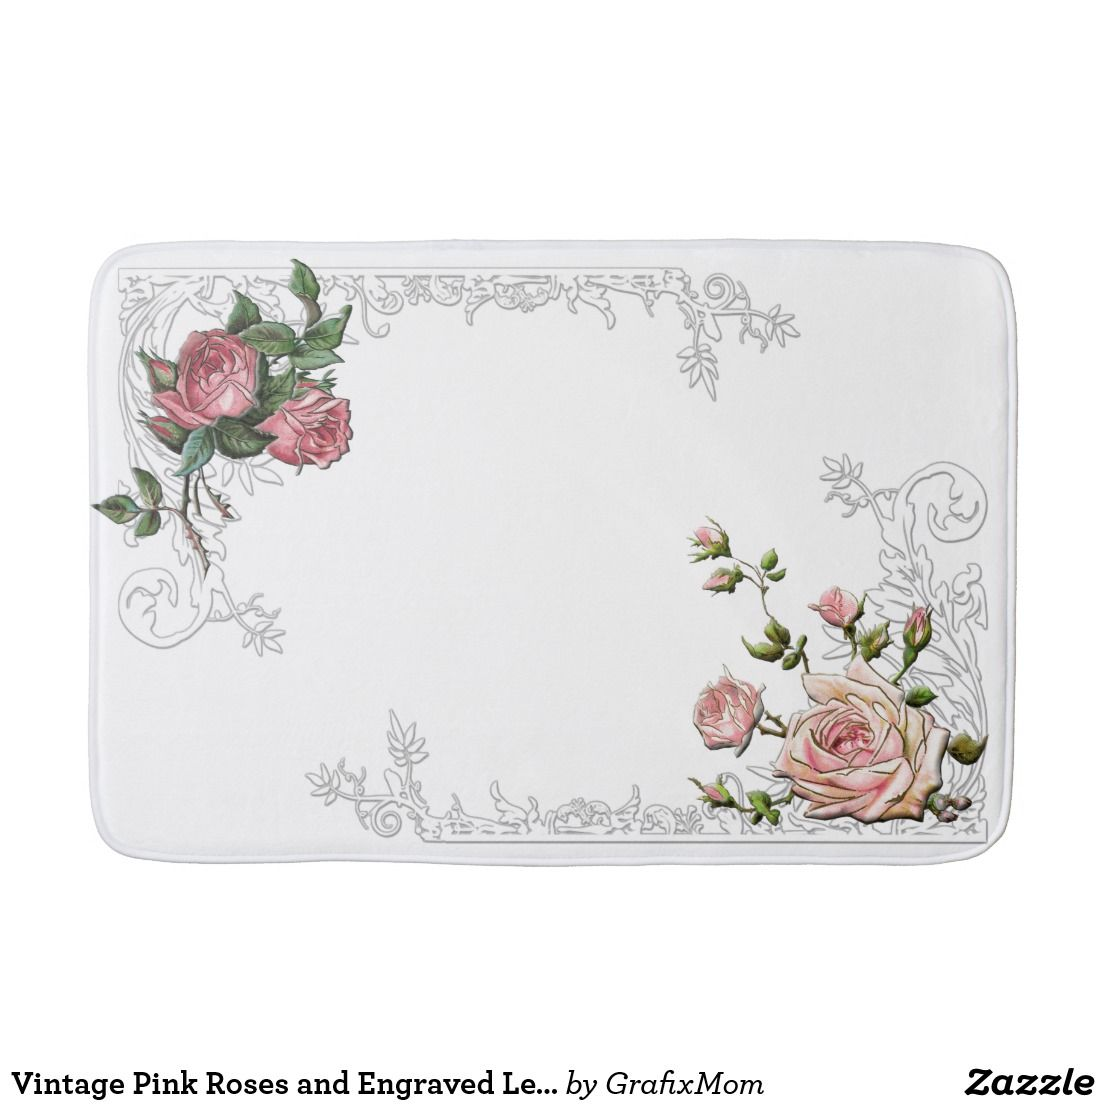 Vintage Pink Roses And Engraved Leafy Border Bathroom Mat Rugats